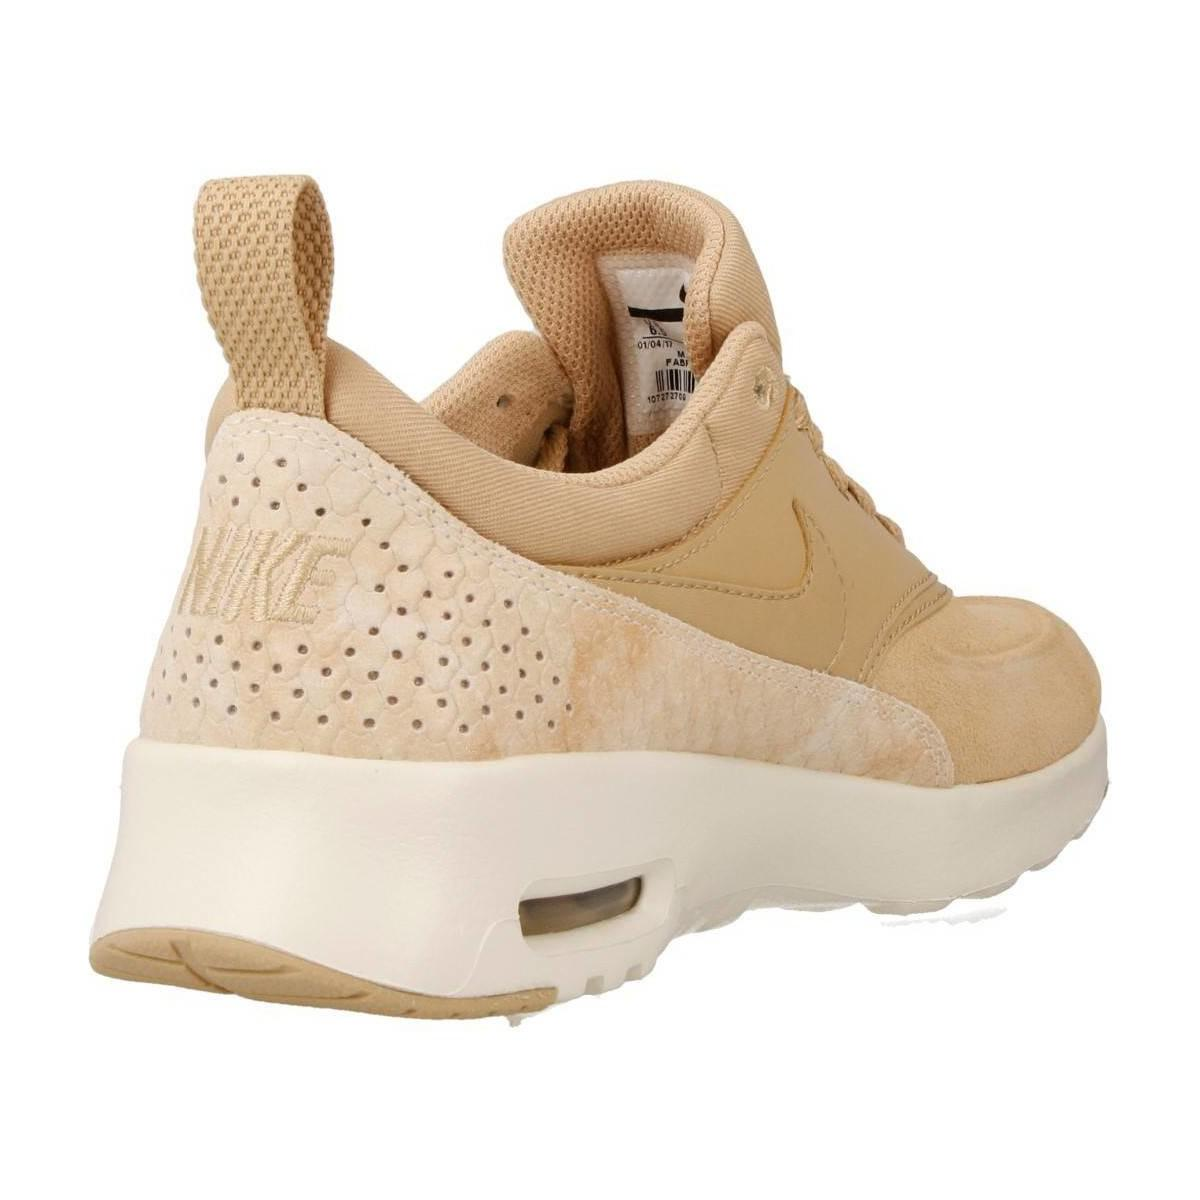 Nike Air Max Thea Prm Women's Shoes (trainers) In Beige in Natural